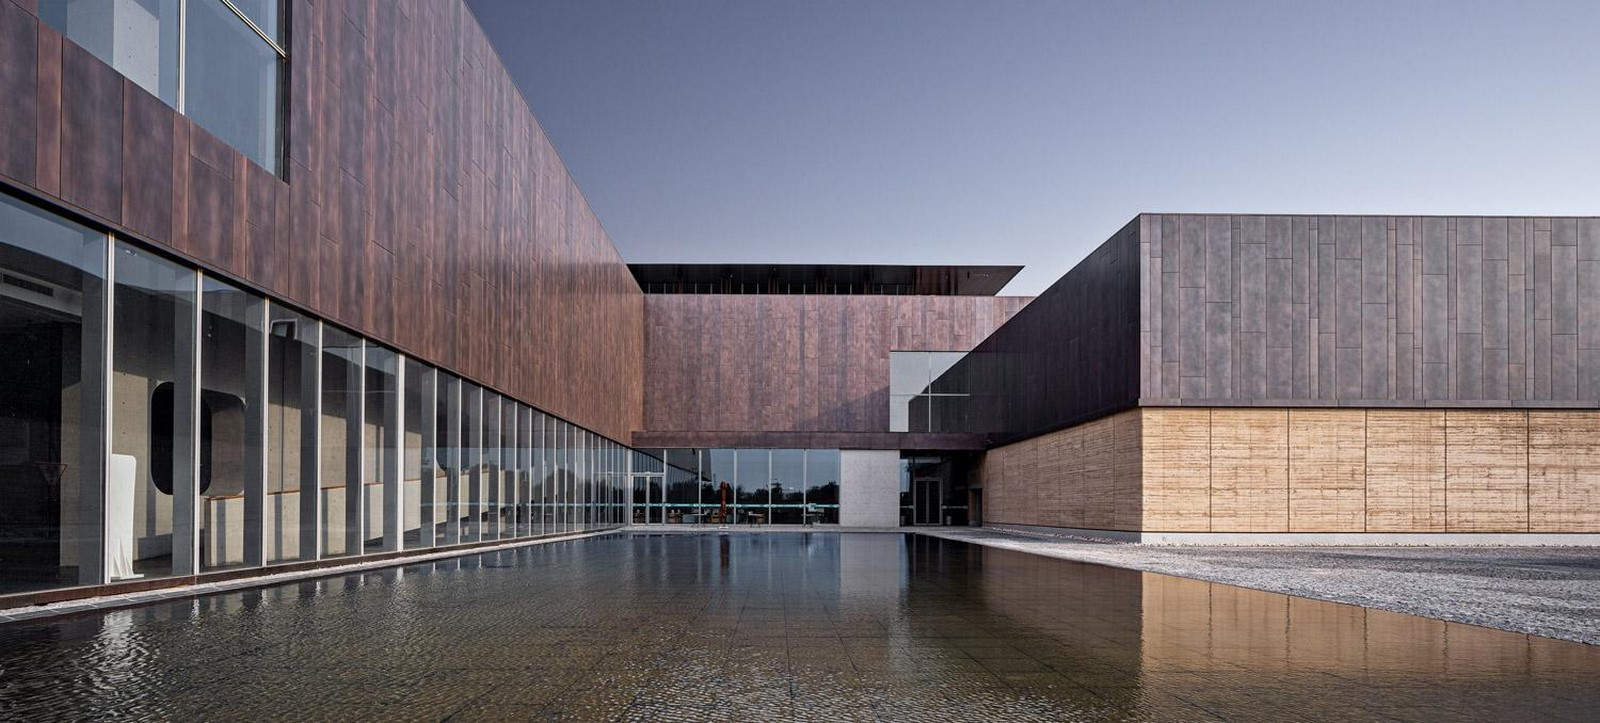 Erlitou Site Museum of the Xia Capital by TJAD and Rurban Studio: Preserving the existing - Sheet13